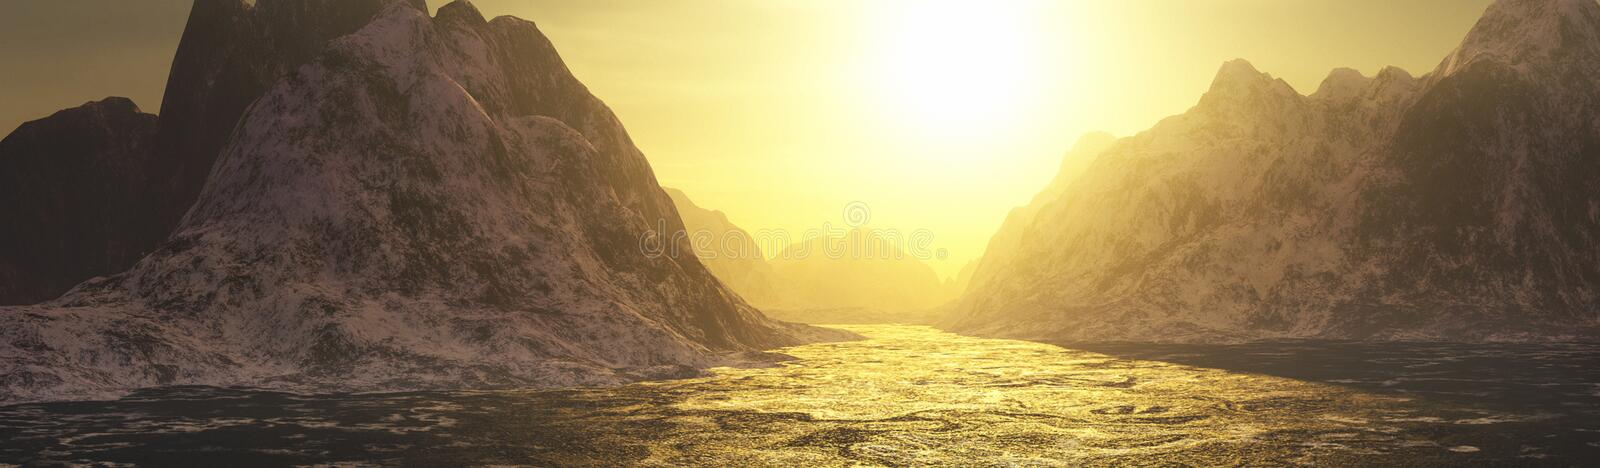 Golden waters and mountains landscape vector illustration